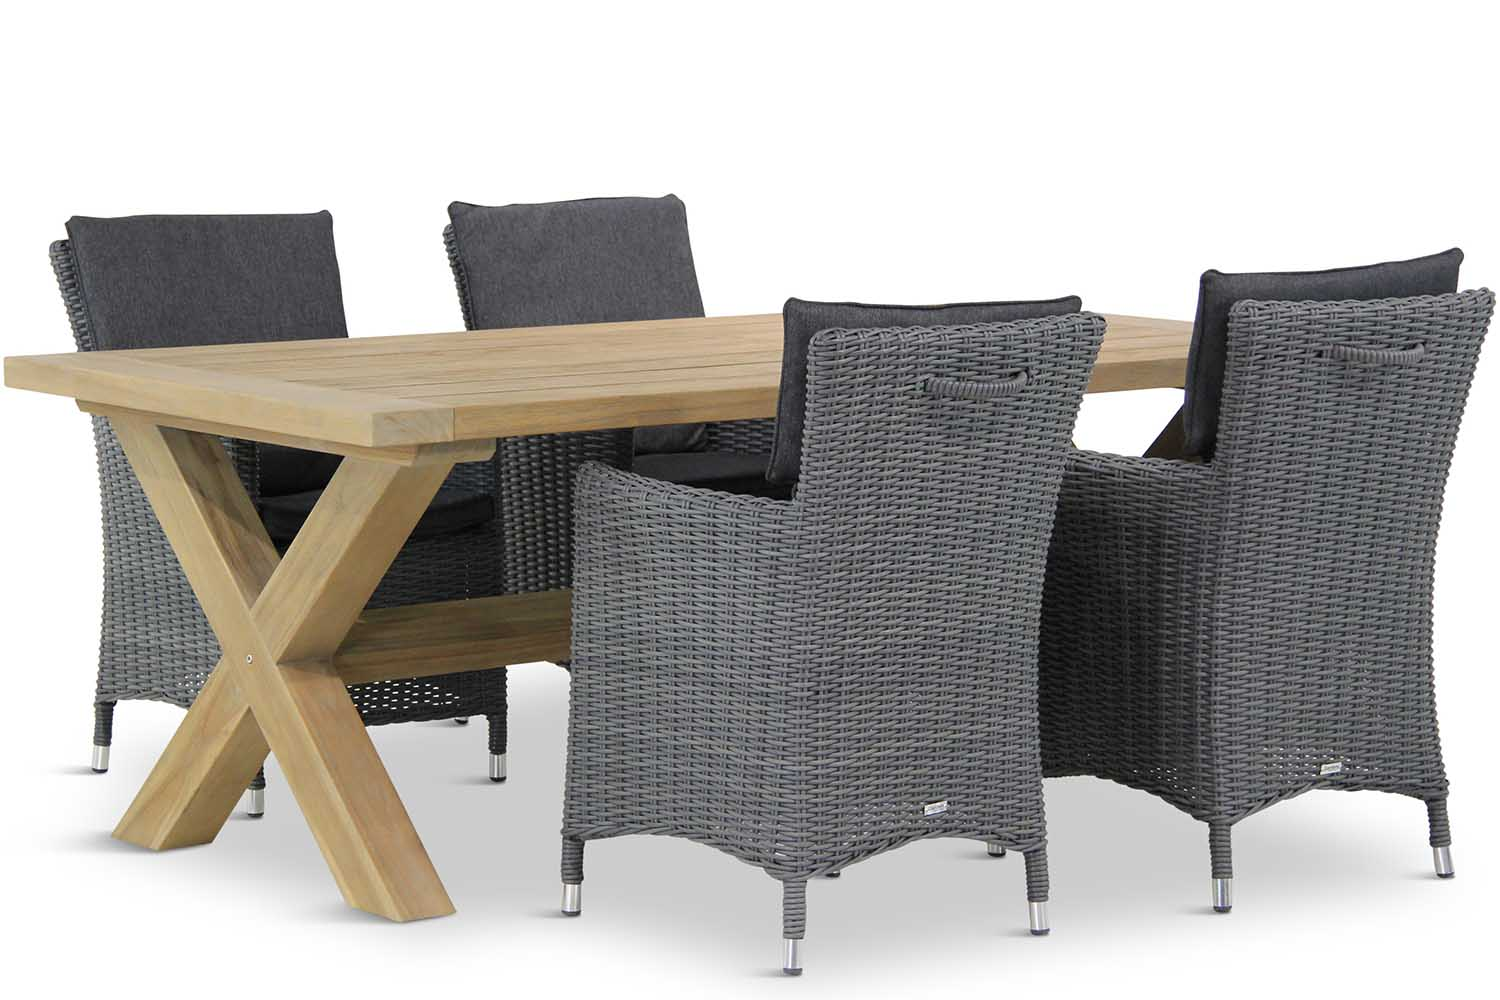 Wicker Garden Collections Springfield/Oregon 200 cm dining tuinset 5-delig